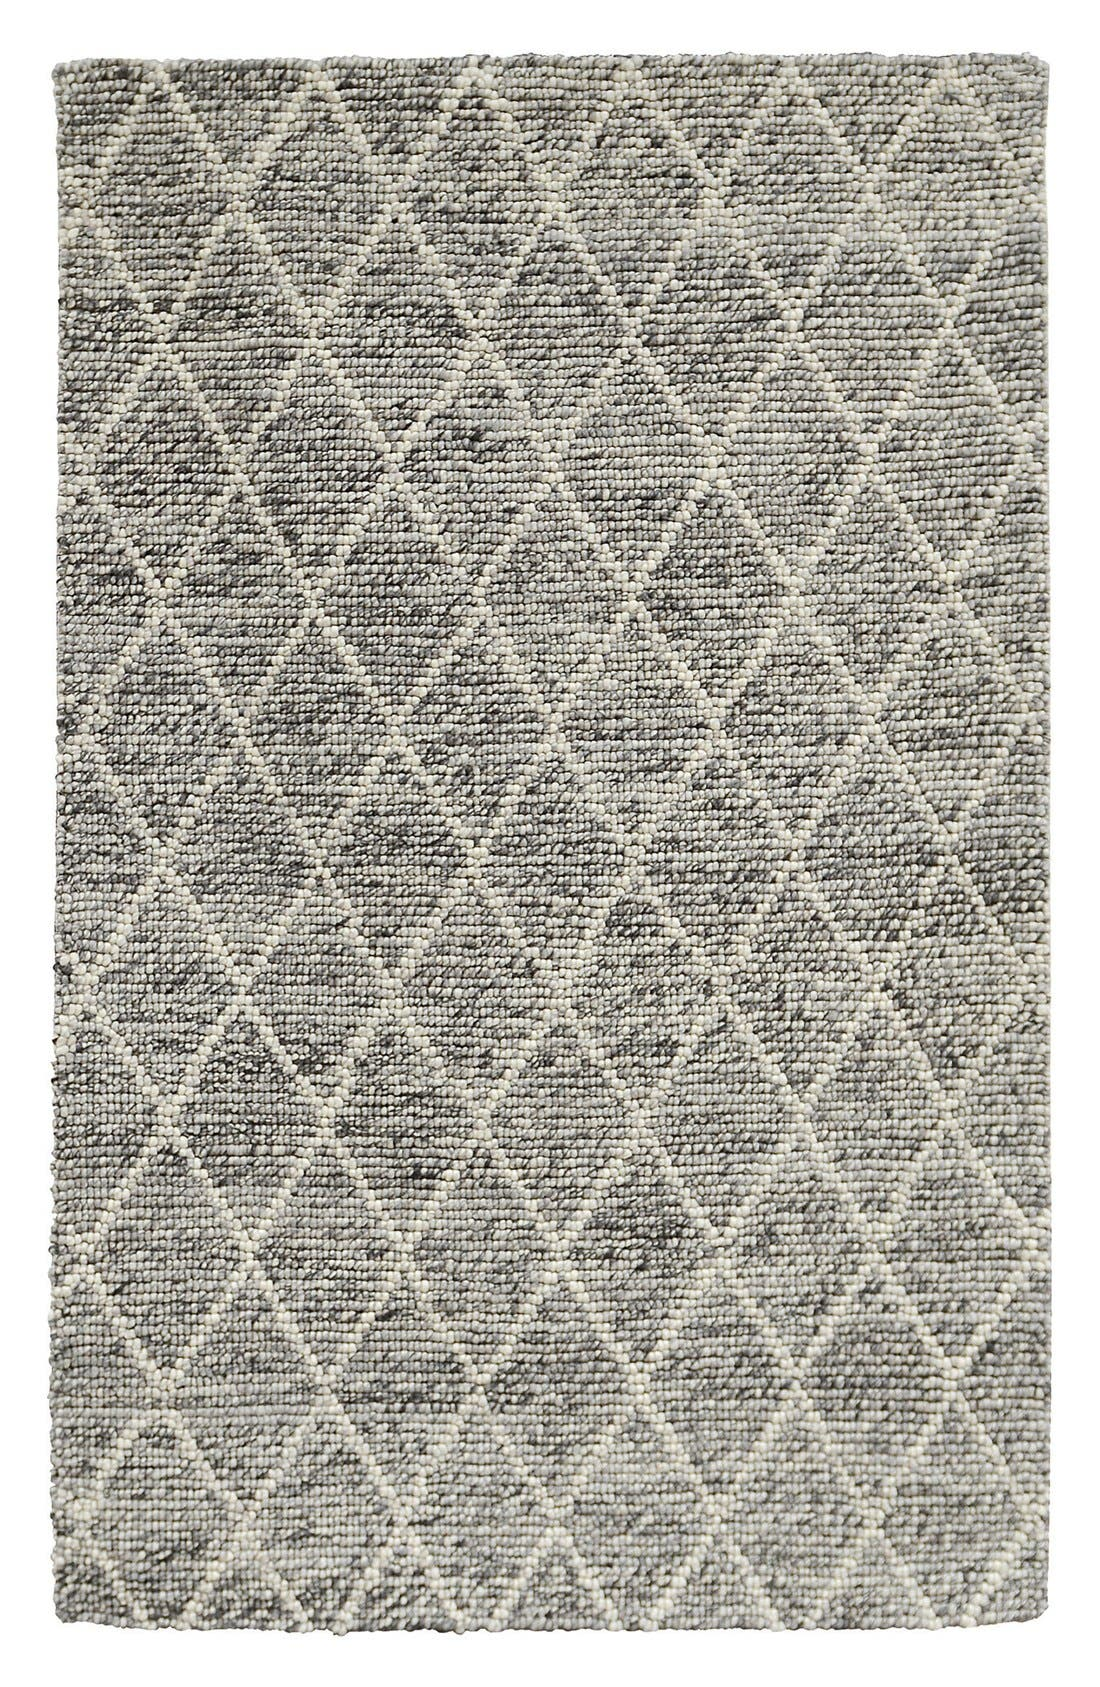 Hand Tufted Wool Rug,                         Main,                         color, Grey